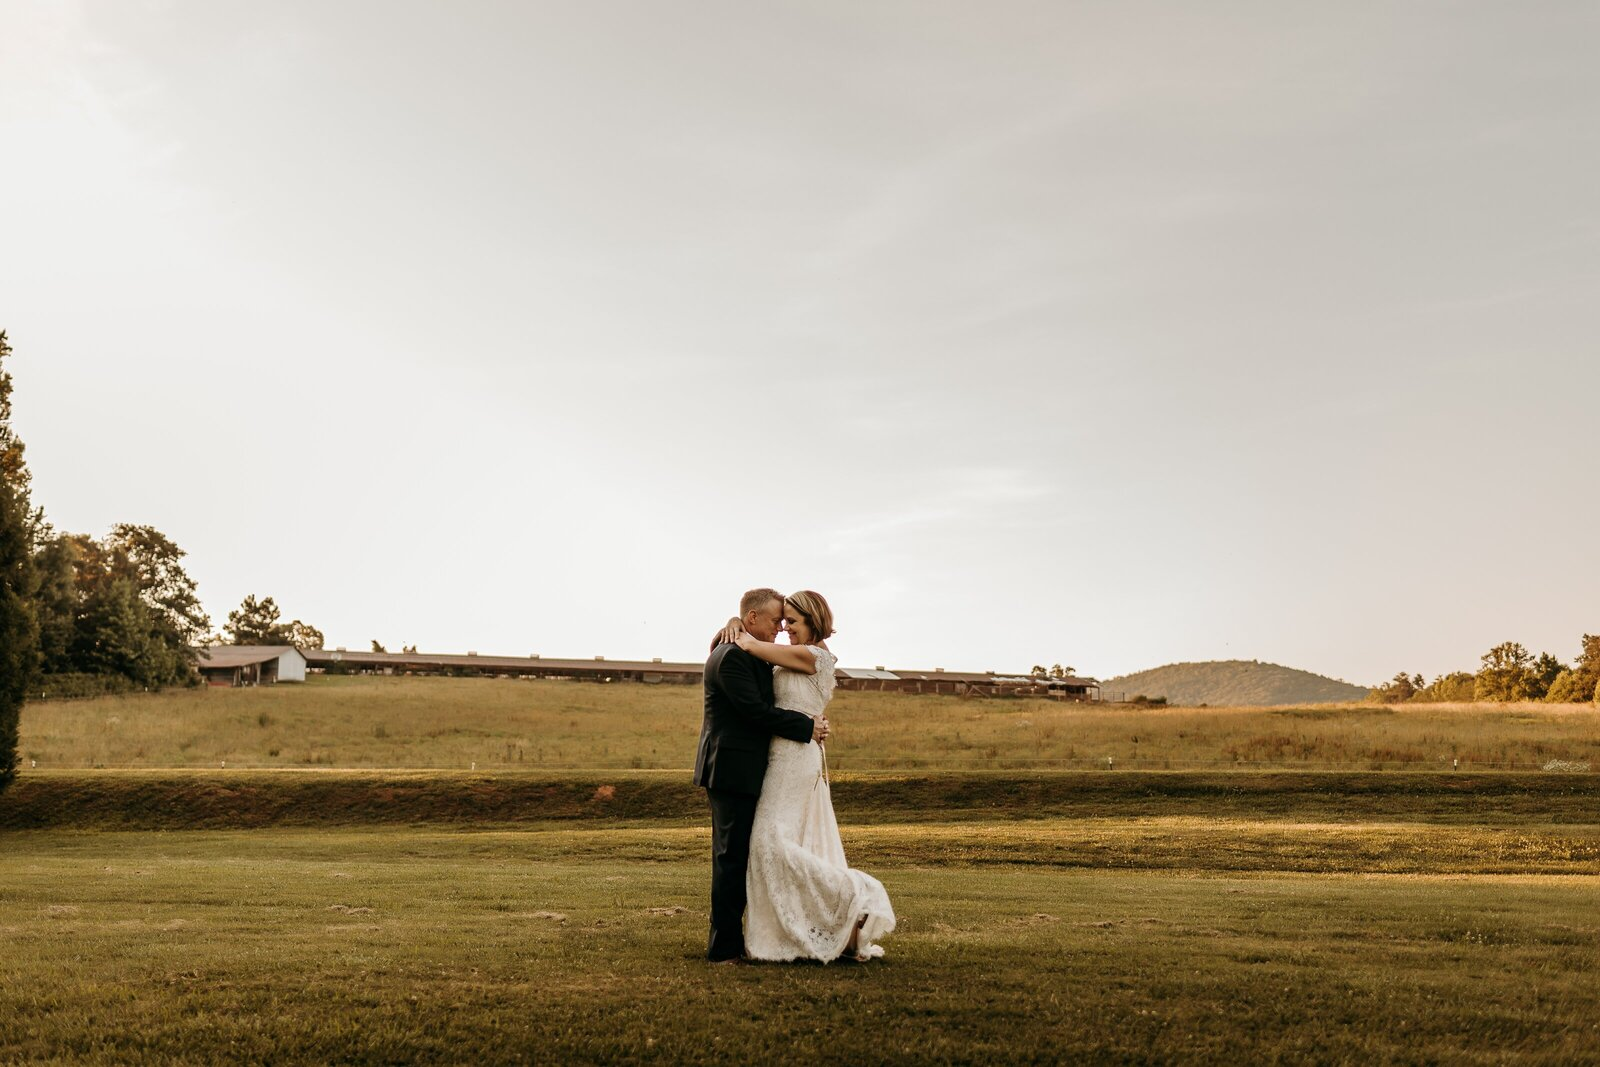 J.Michelle Photography photographs bride and groom portrait